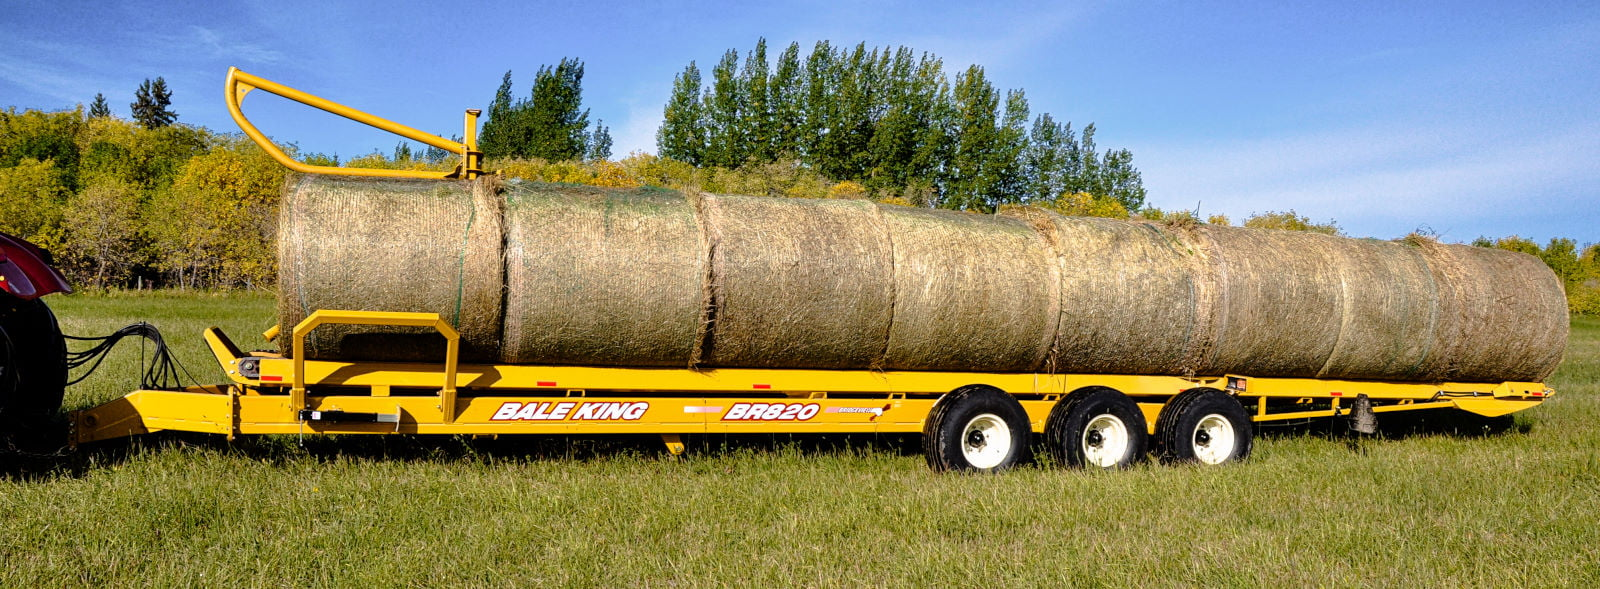 Bridgeview - Bale King BR820 bale carrier loaded